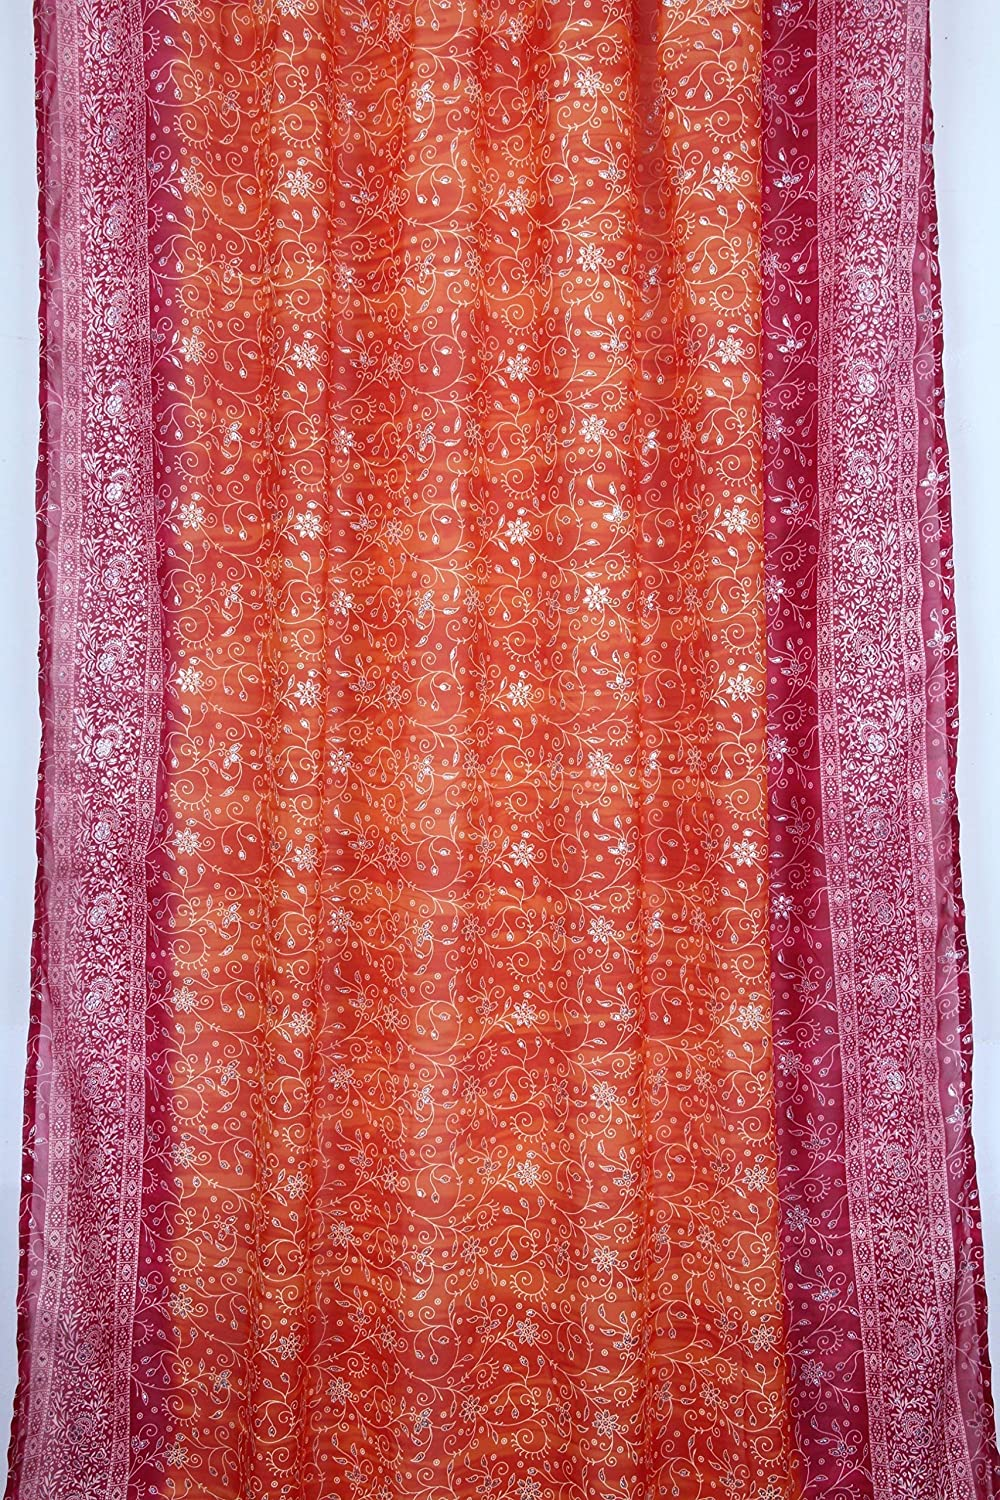 Colorful Window Treatment Draperies Indian Sari panel 108 96 84 inch for bedroom living room dining room kids yoga studio canopy boho tent FREE GIFT Silk bag Rust Orange Curtain Magenta Pink accents